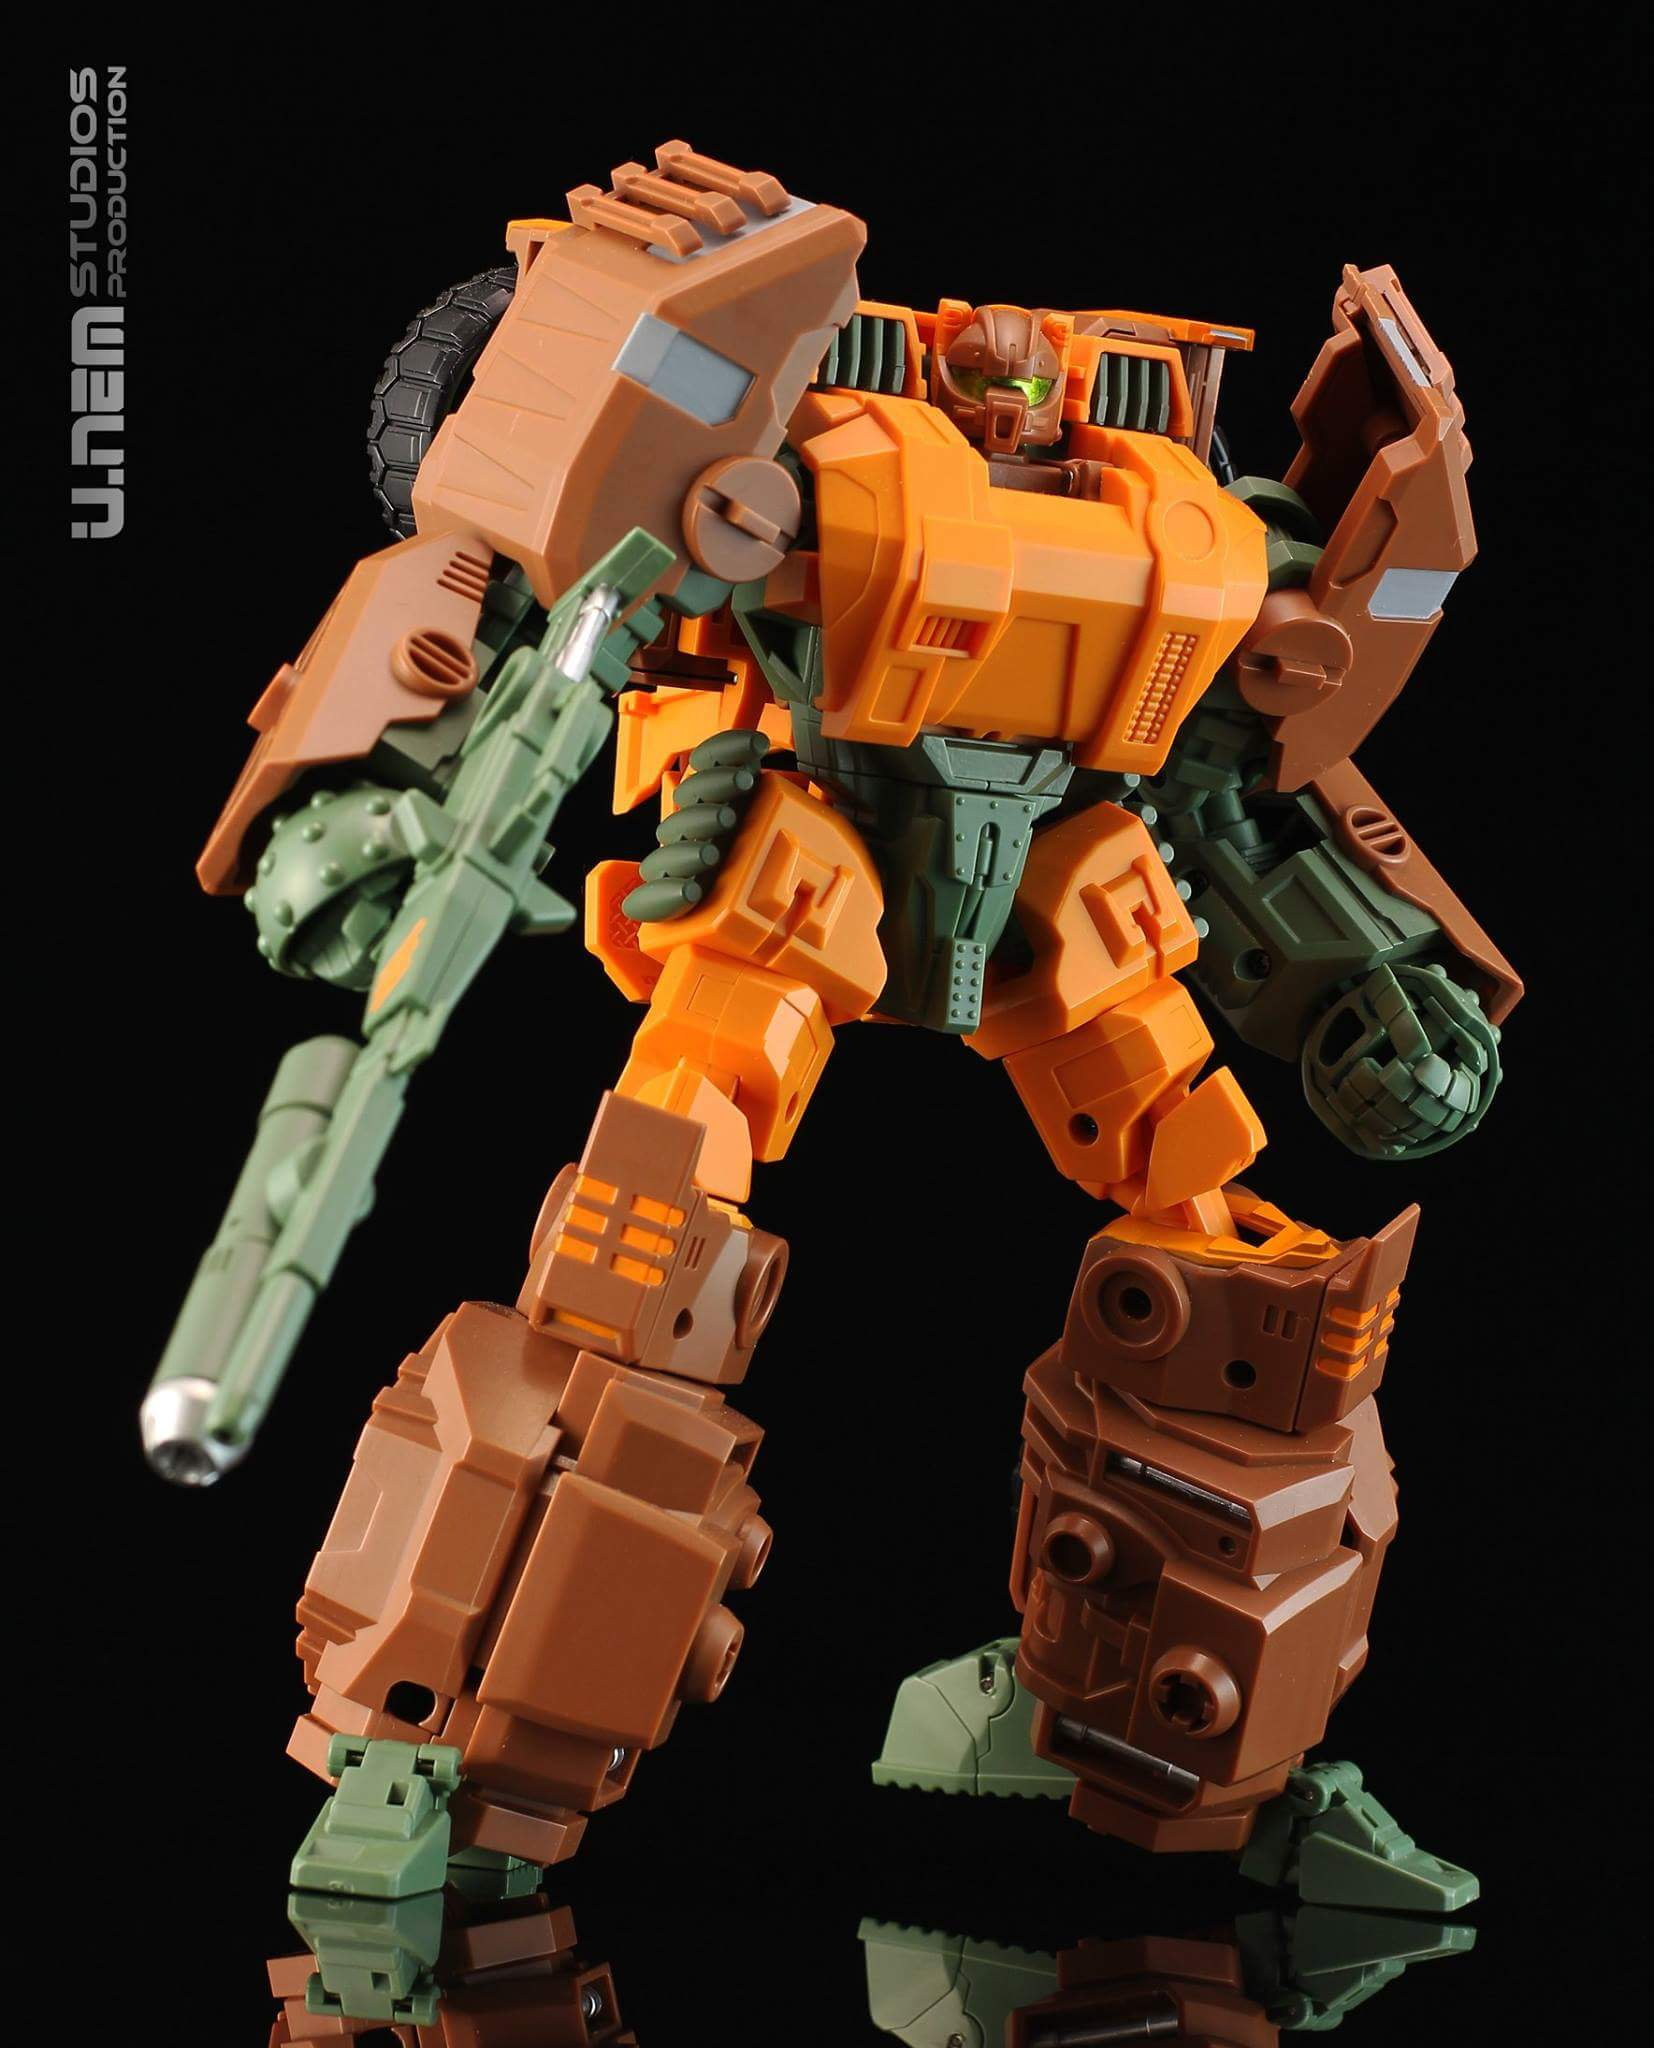 [Mastermind Creations] Produit Tiers - R-23 Dicamus - aka Roadbuster/Cahot des Wreckers IDW IITvVlRq